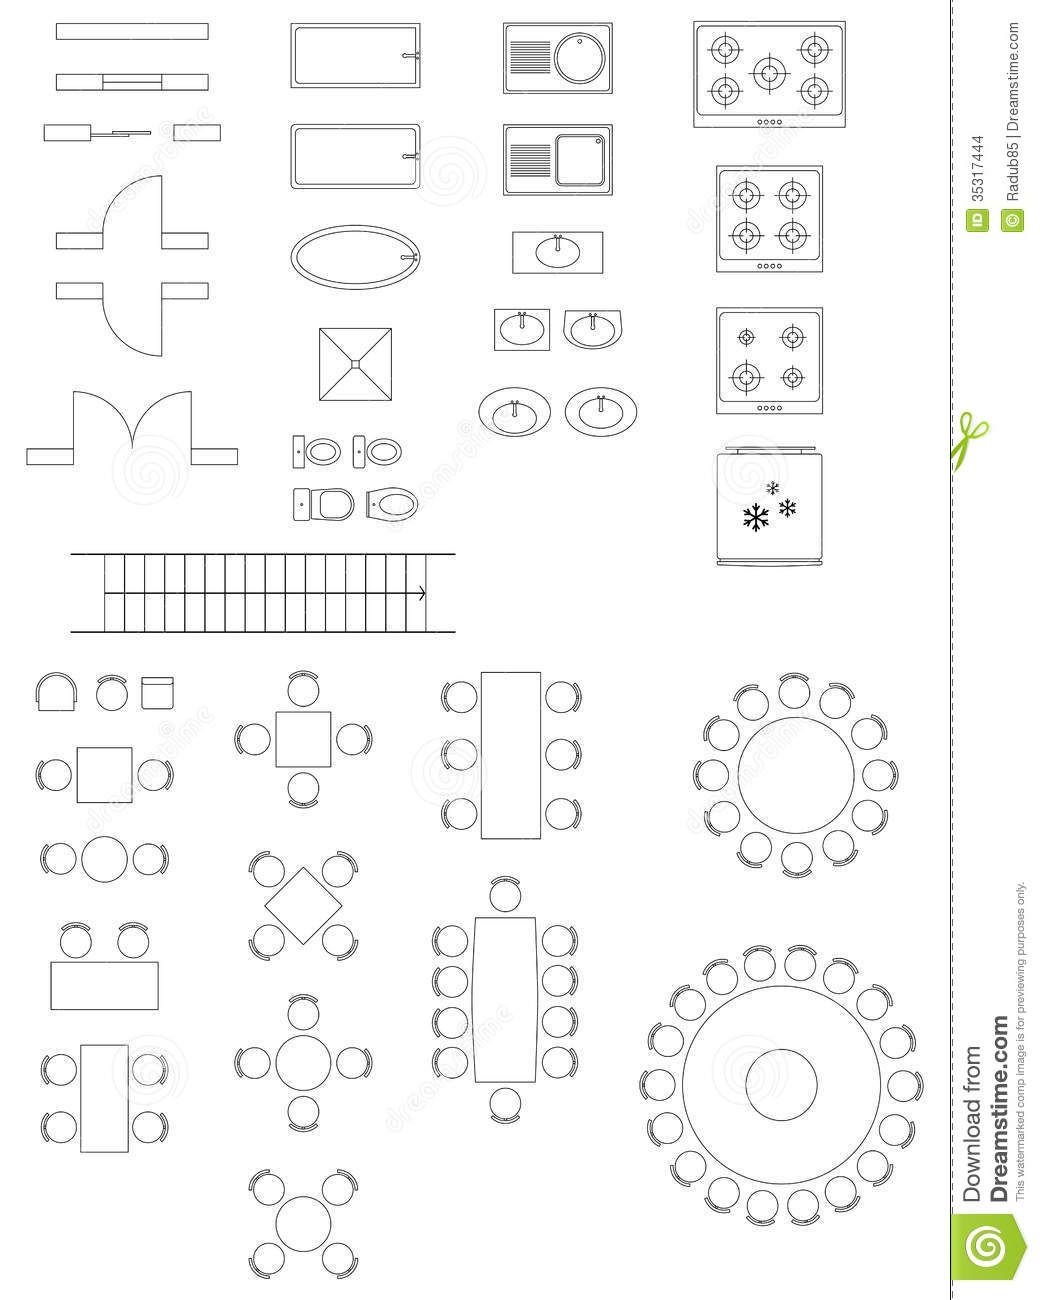 Standard Symbols Used In Architecture Plans Download From Over 50 Million High Quality Stock Photo Floor Plan Symbols Architecture Symbols Architecture Icons